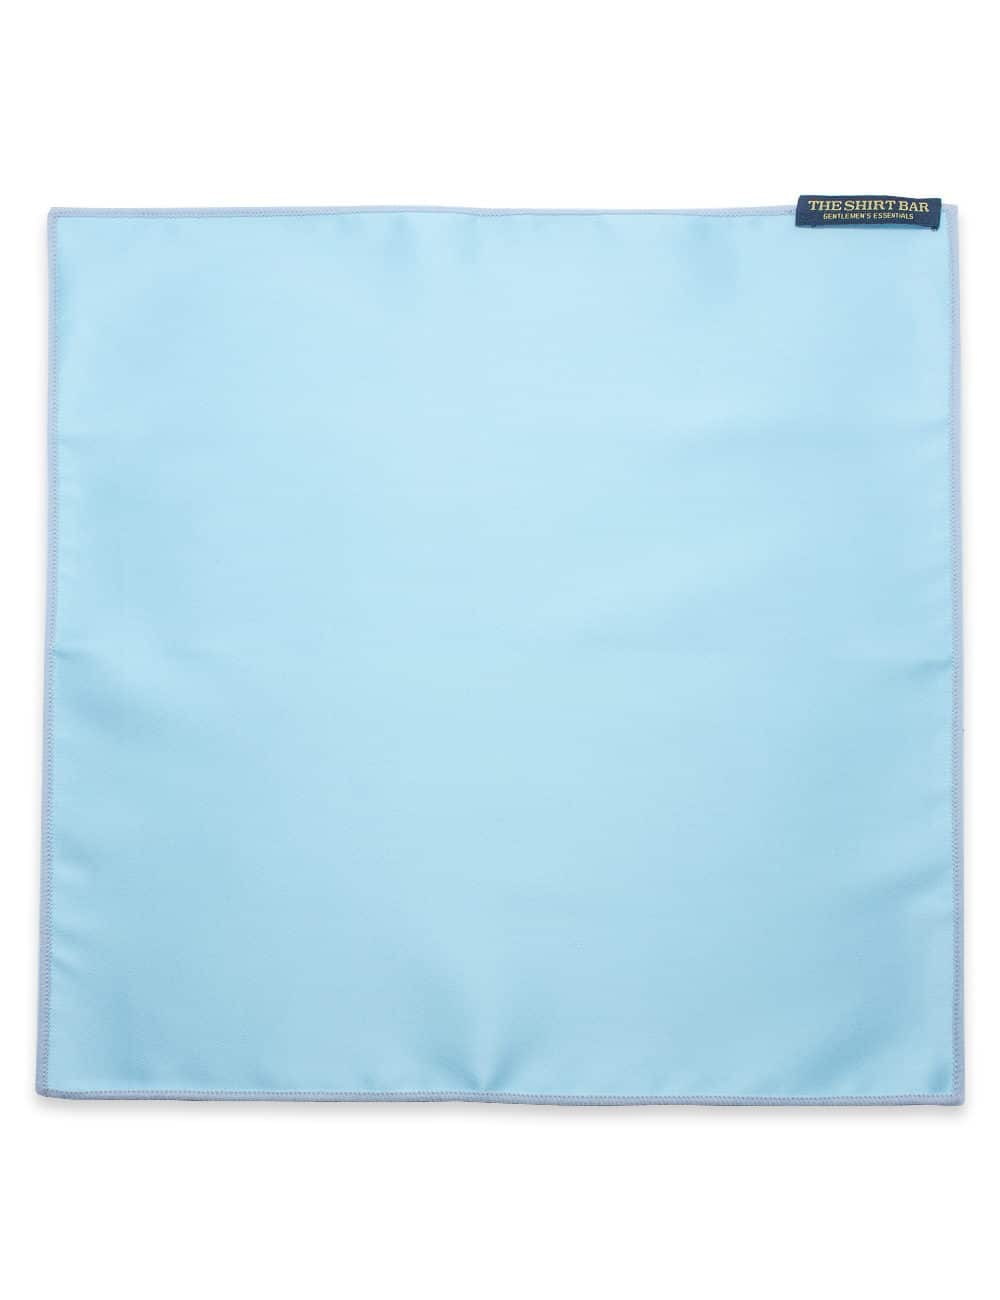 Solid Canal Blue Woven Pocket Square PSQ33.9